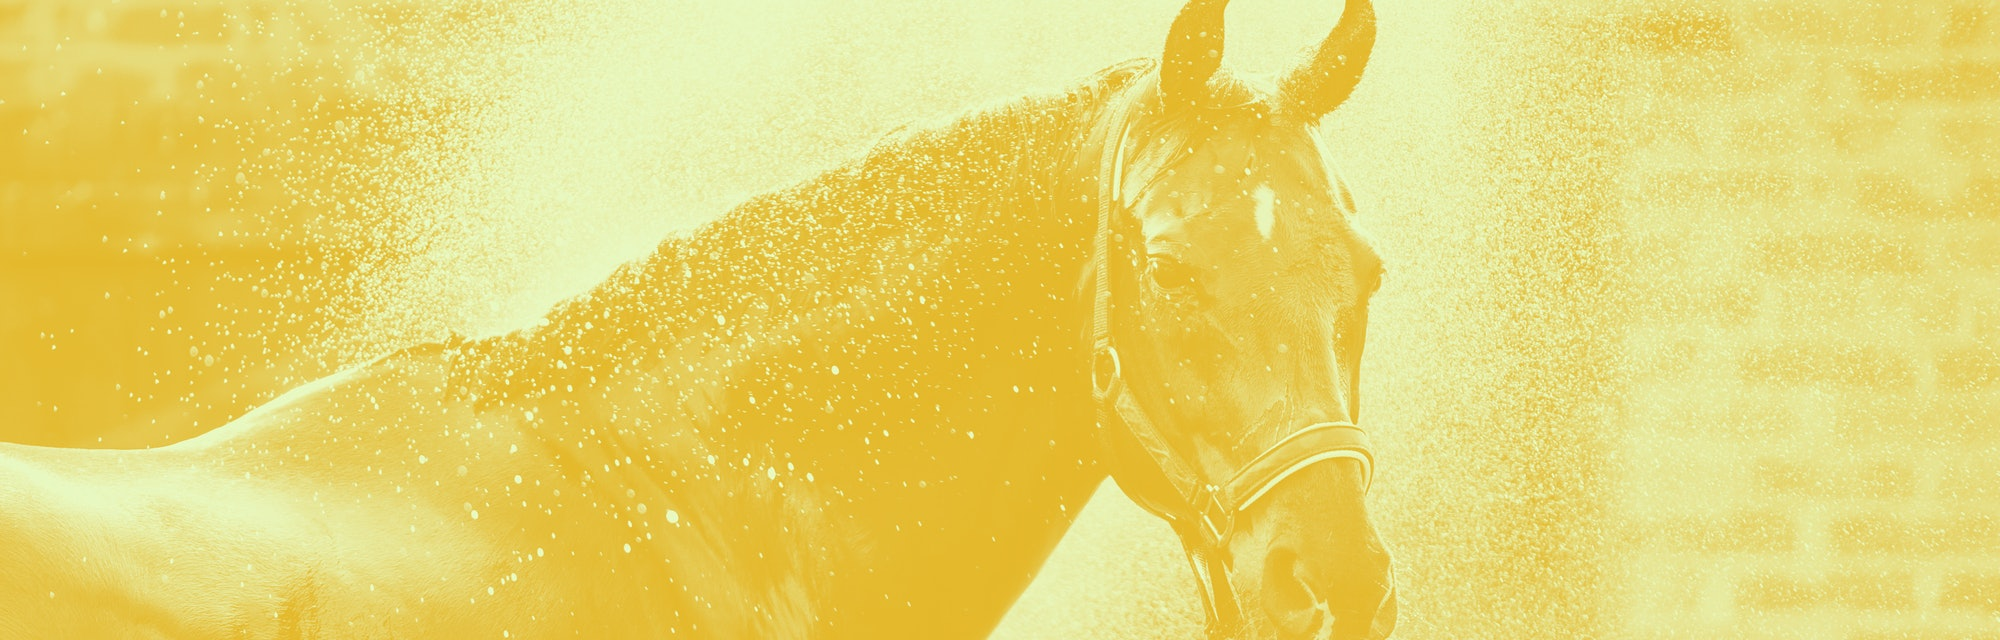 Horse portrait in spray of water. Horse shower at the stable